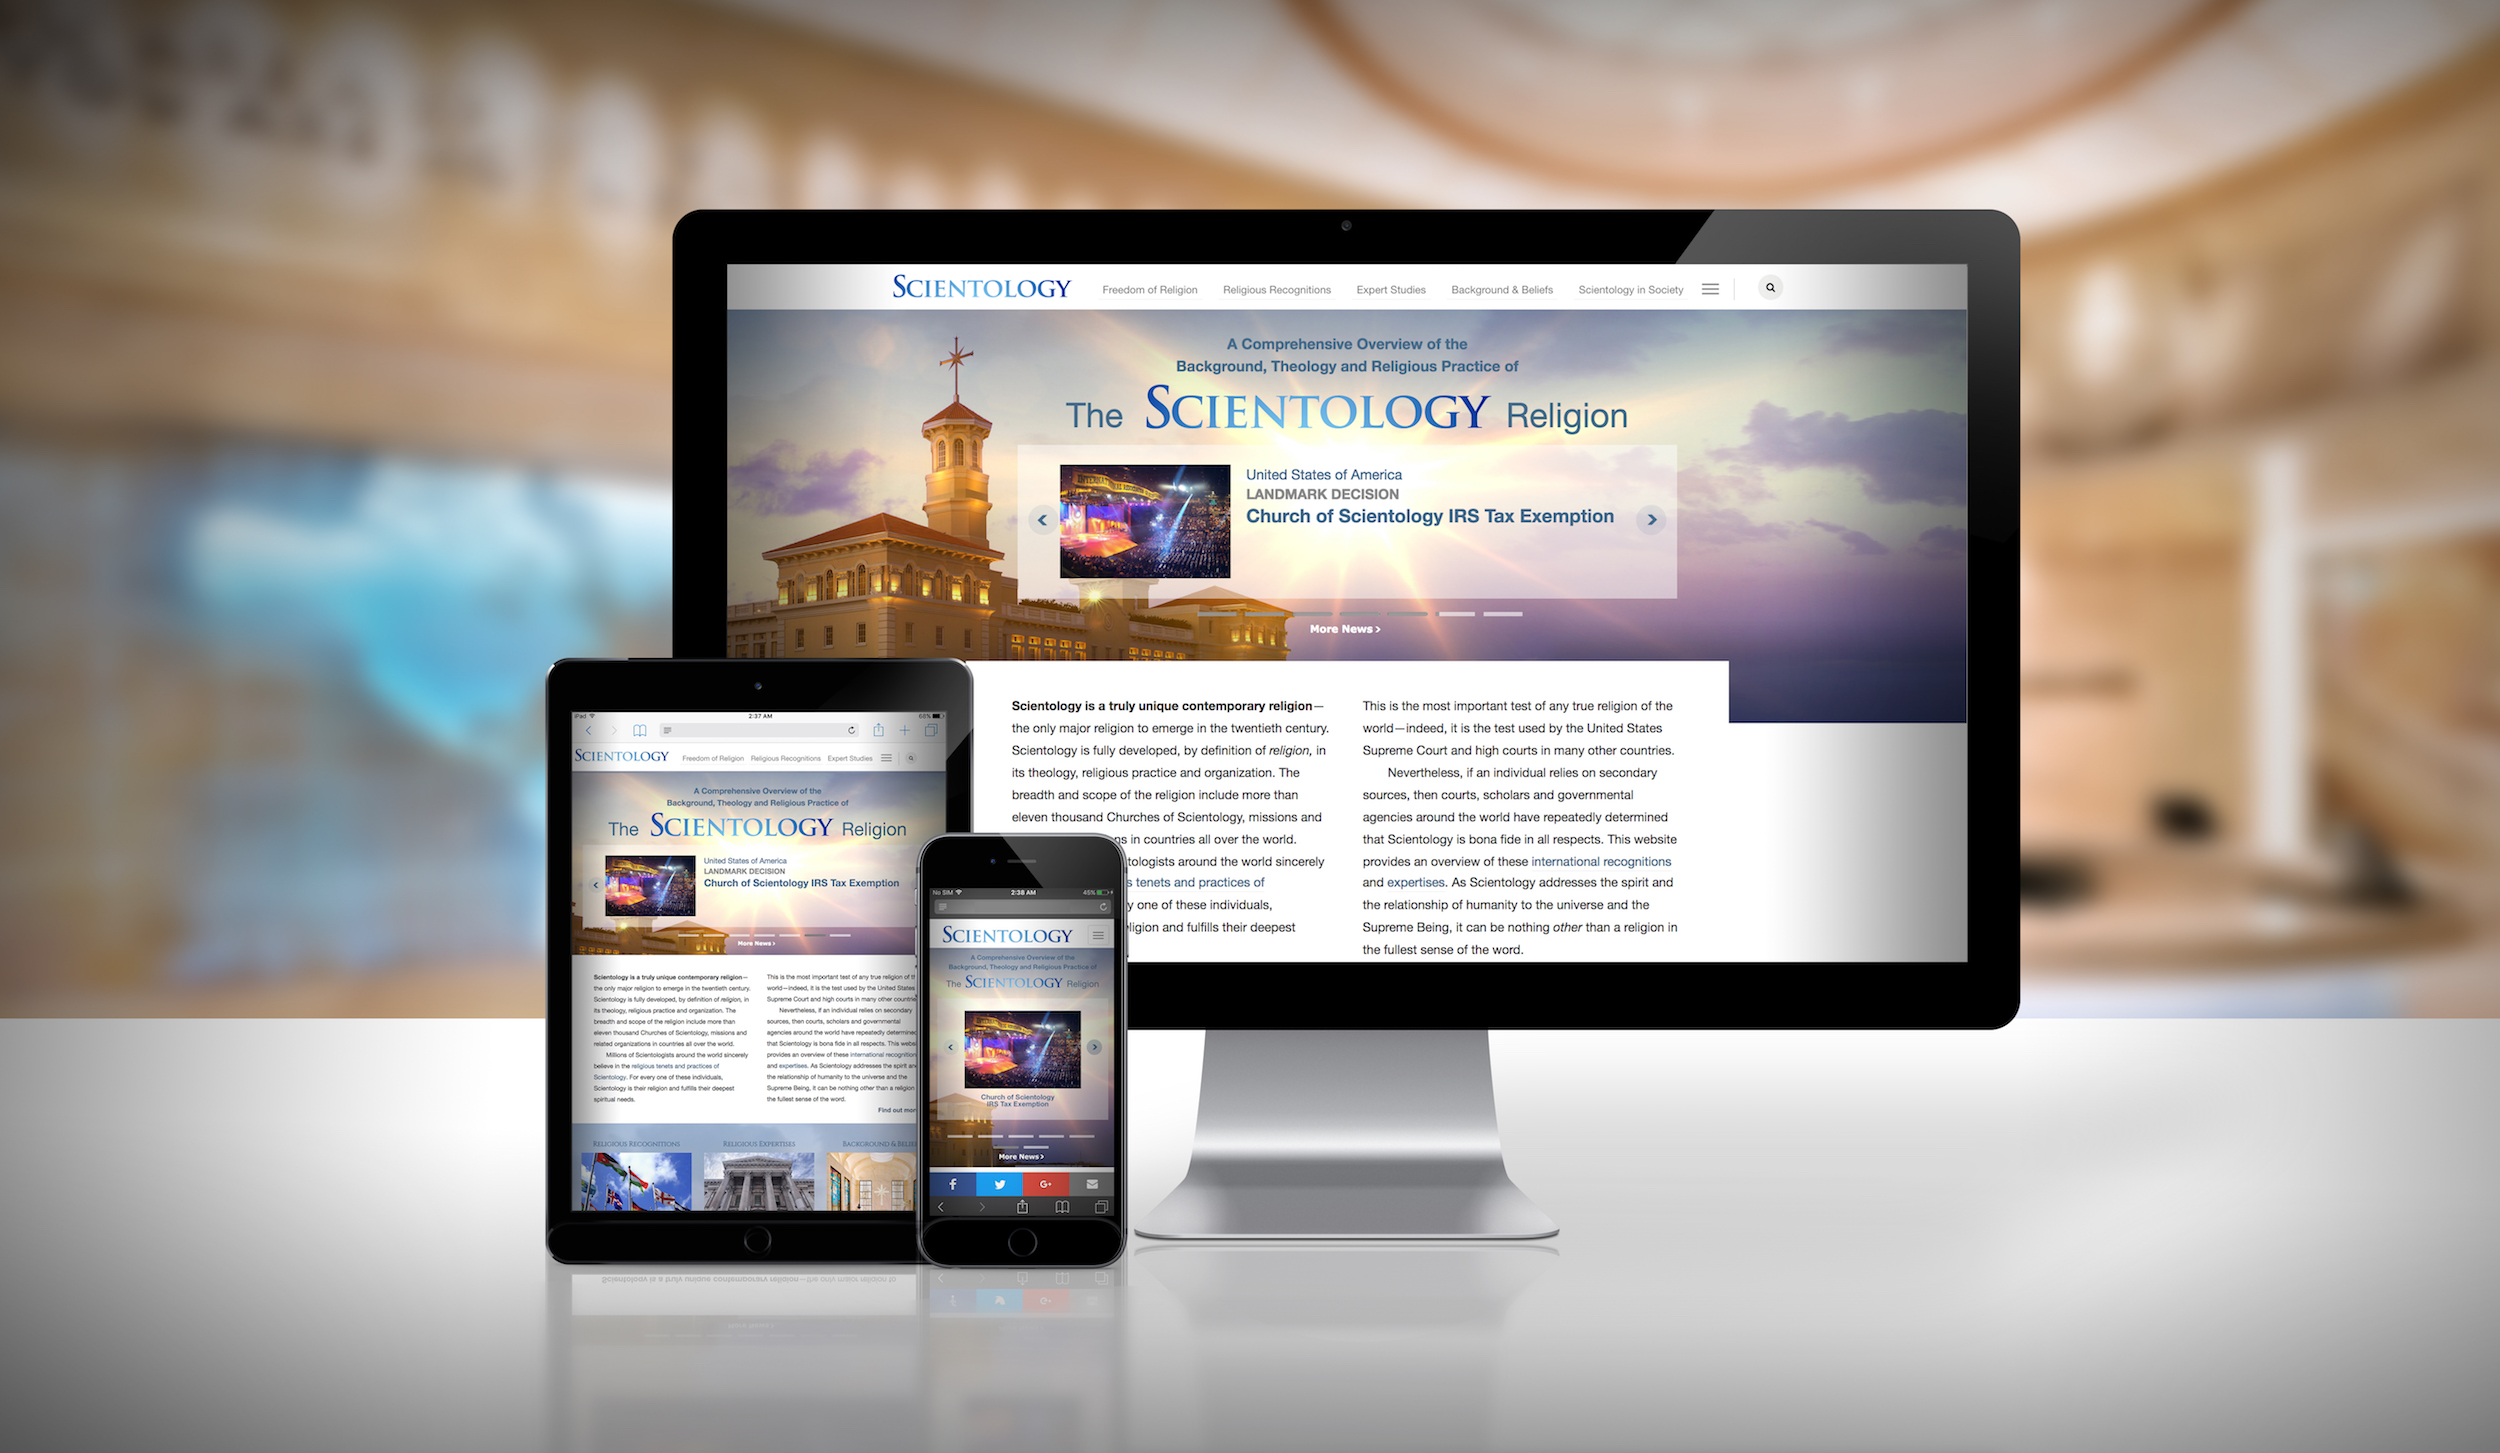 freedom of religion defined in new website from the church of